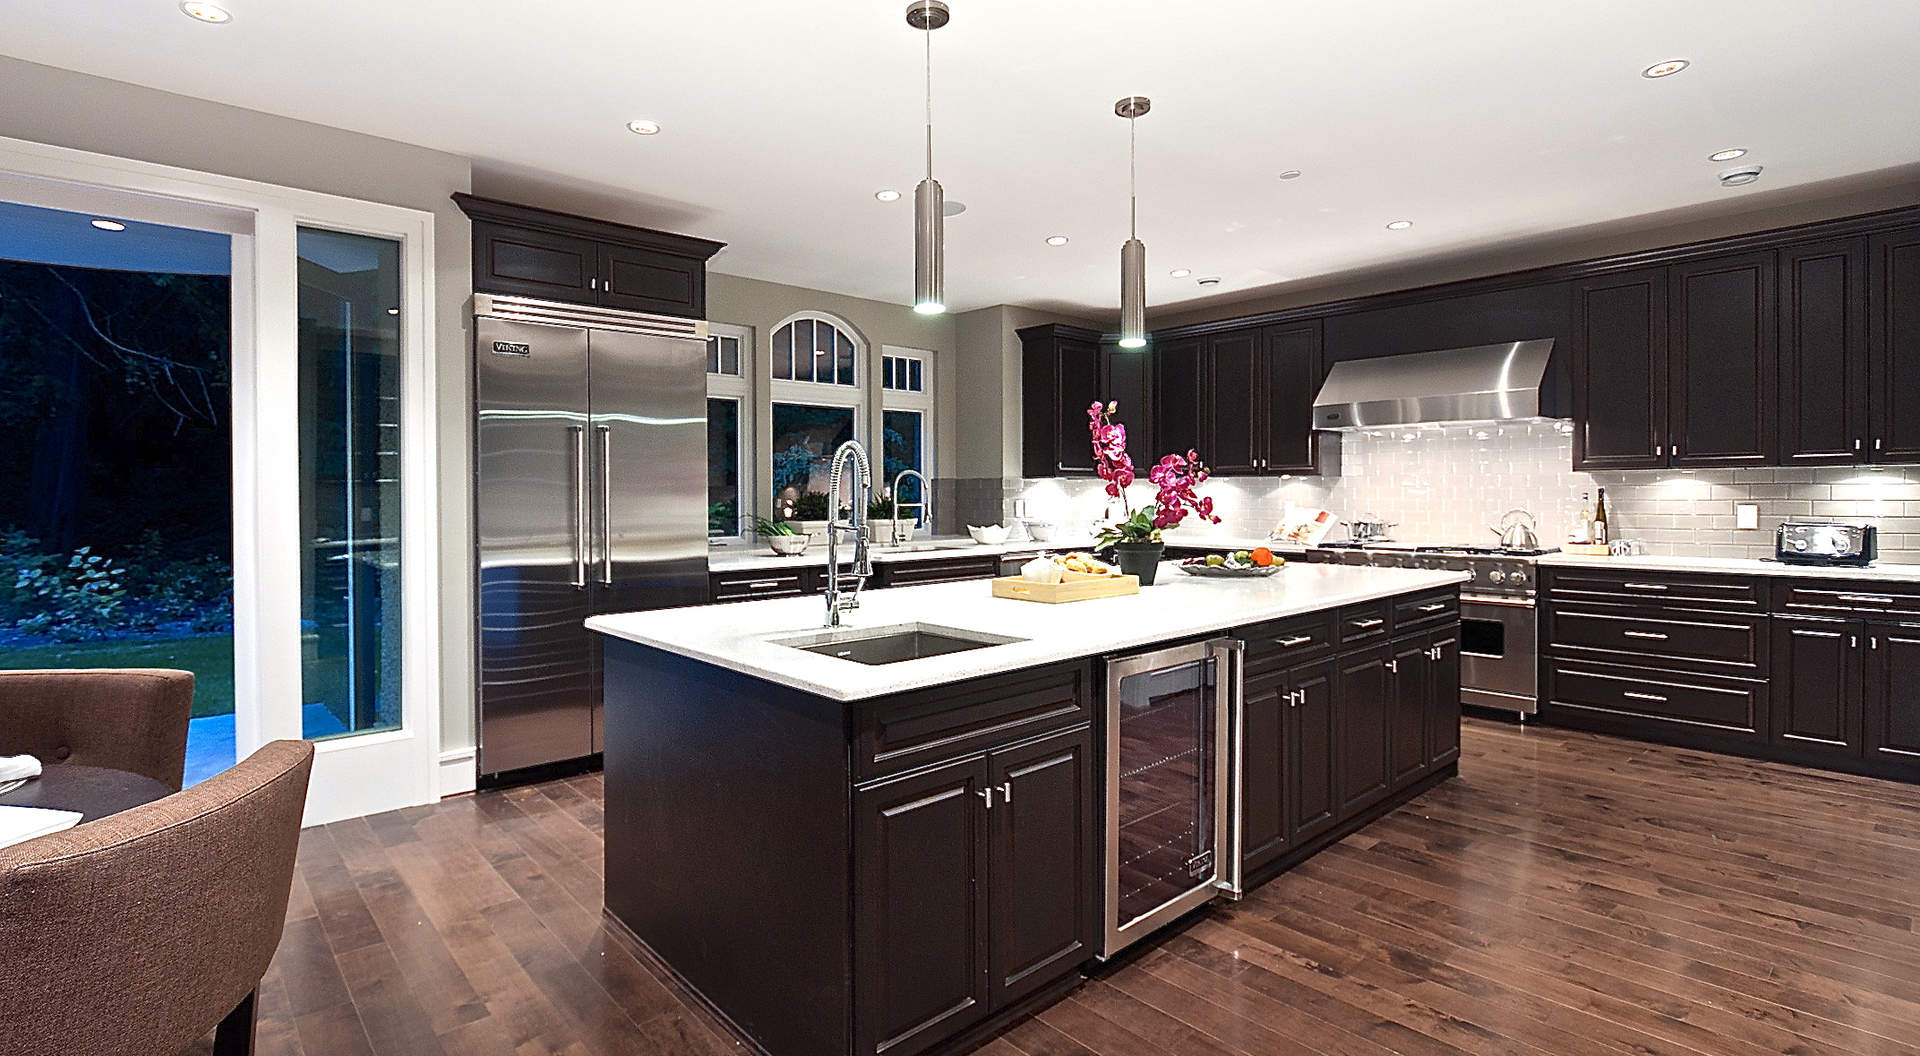 Top Appliances & Custom Millwork